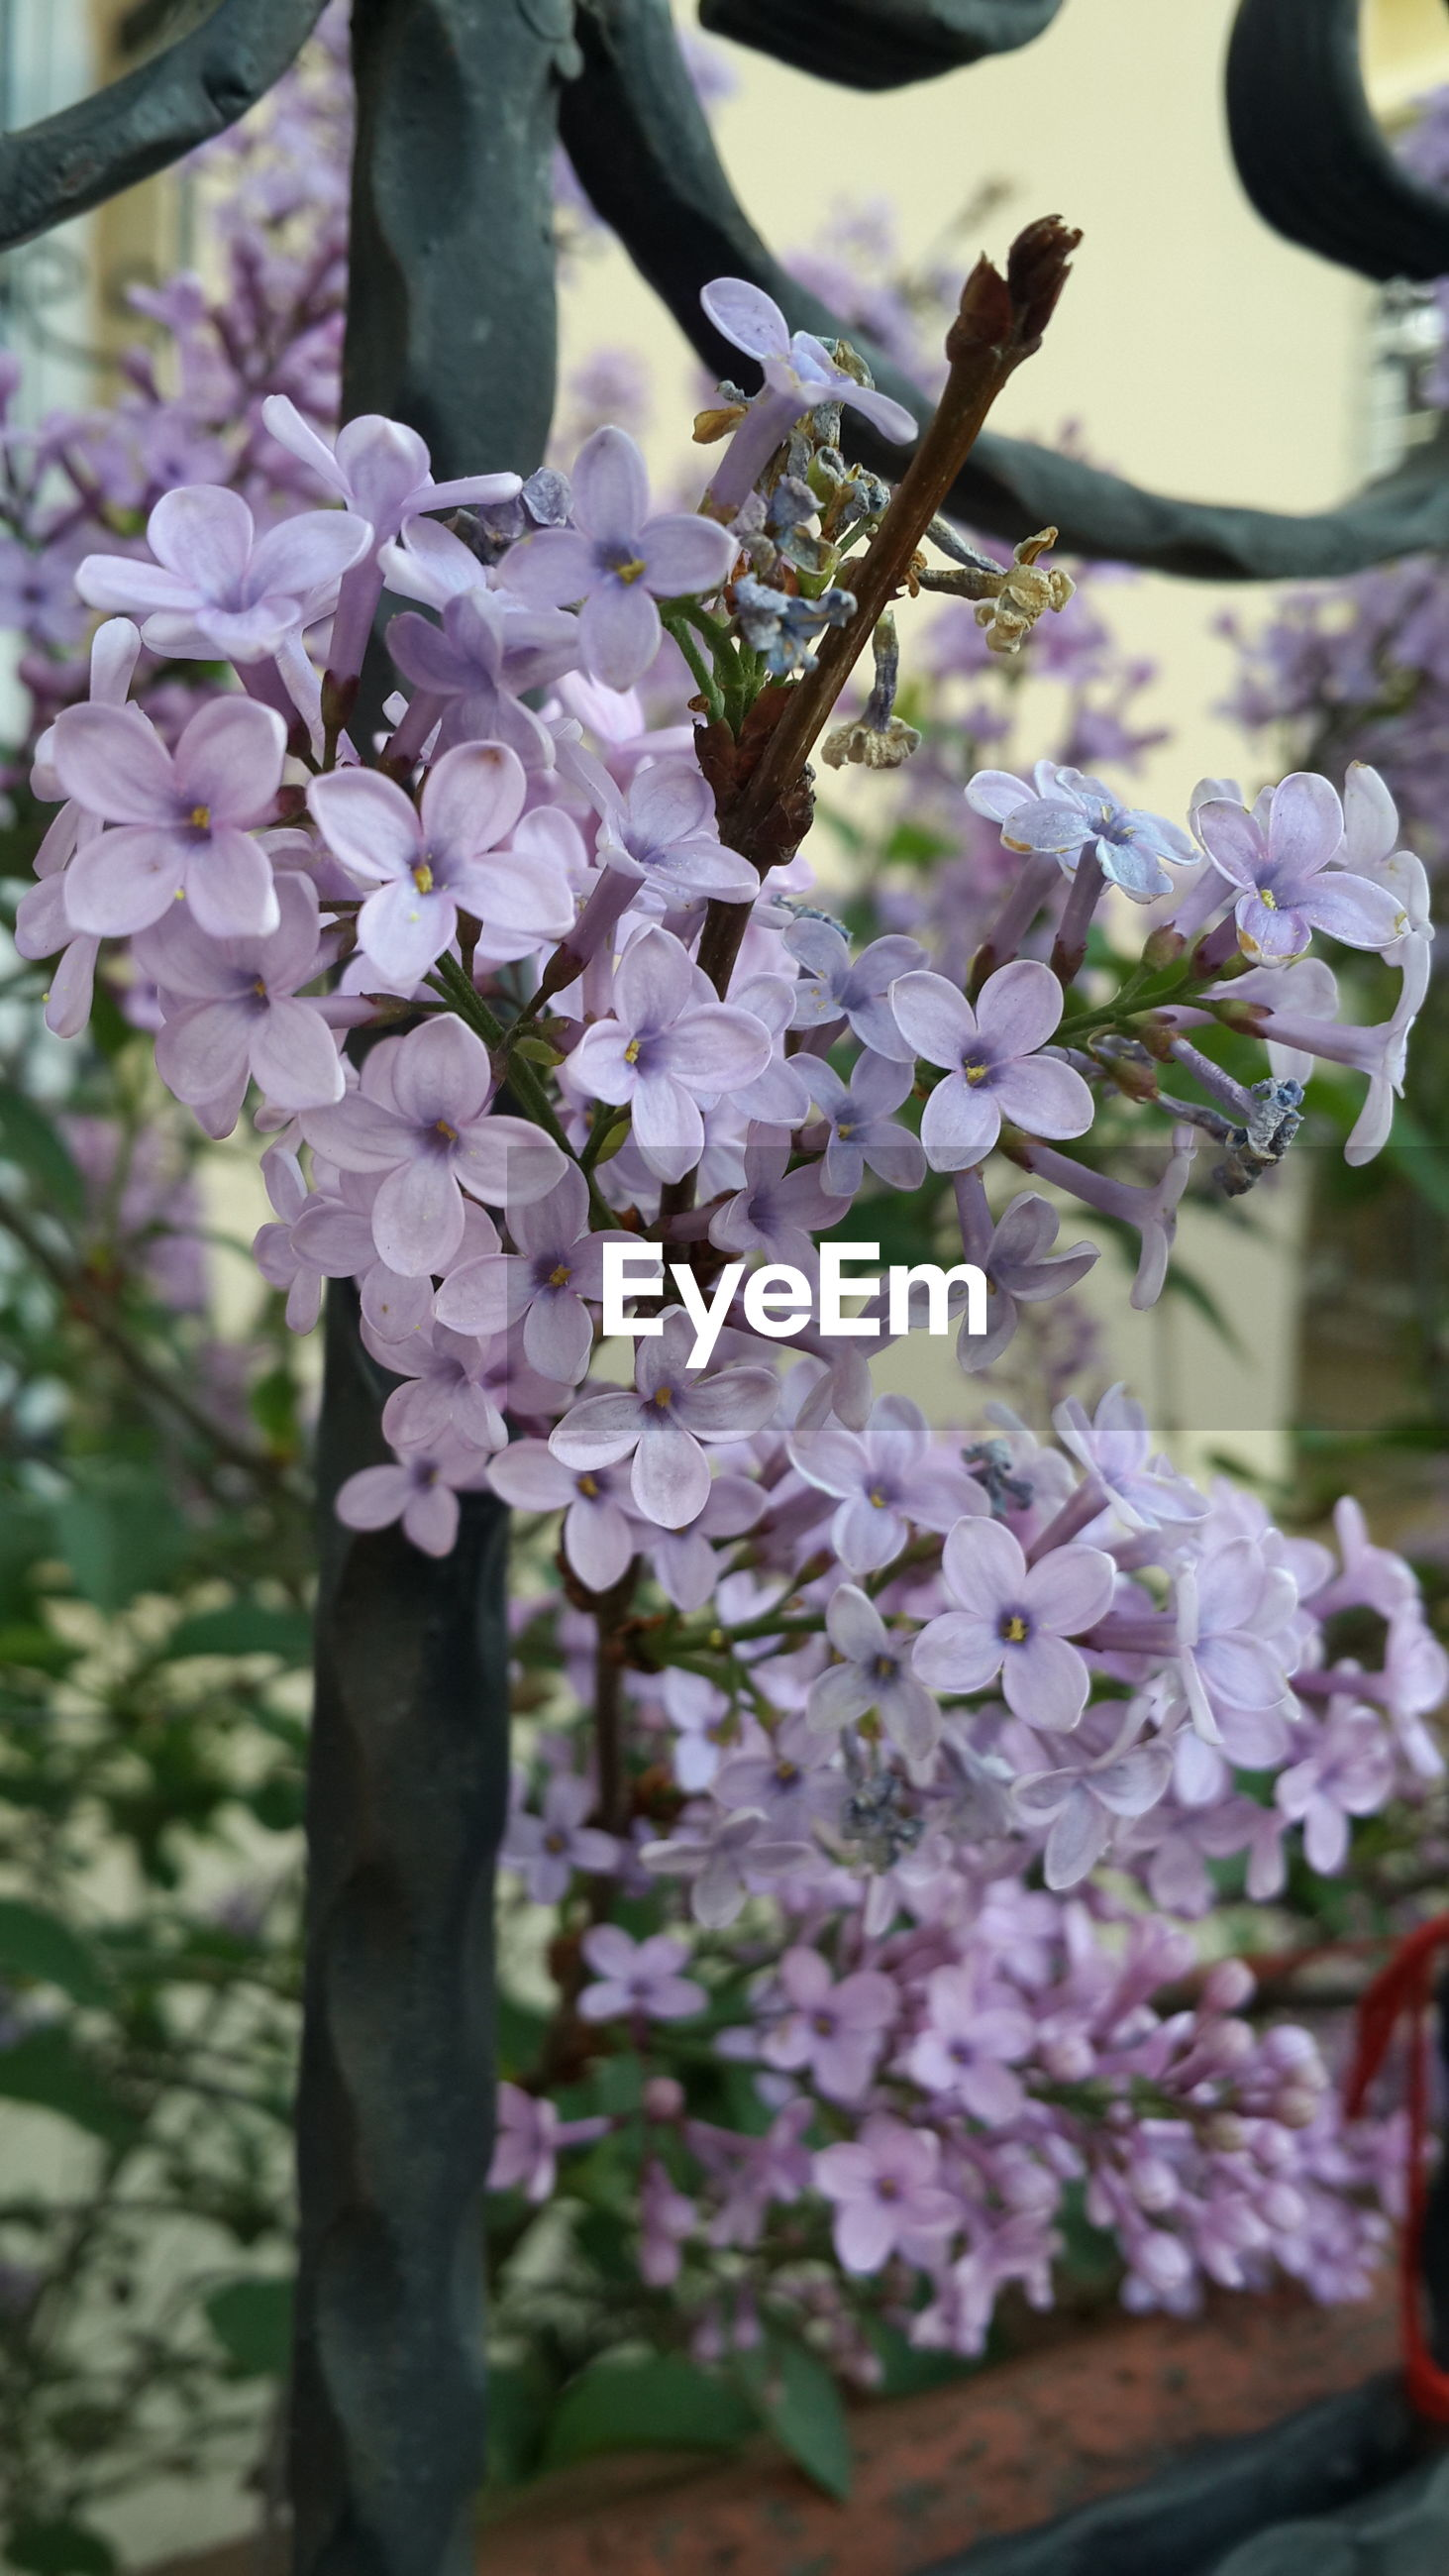 flower, freshness, growth, fragility, beauty in nature, petal, focus on foreground, purple, blooming, nature, close-up, plant, in bloom, flower head, blossom, selective focus, day, branch, park - man made space, outdoors